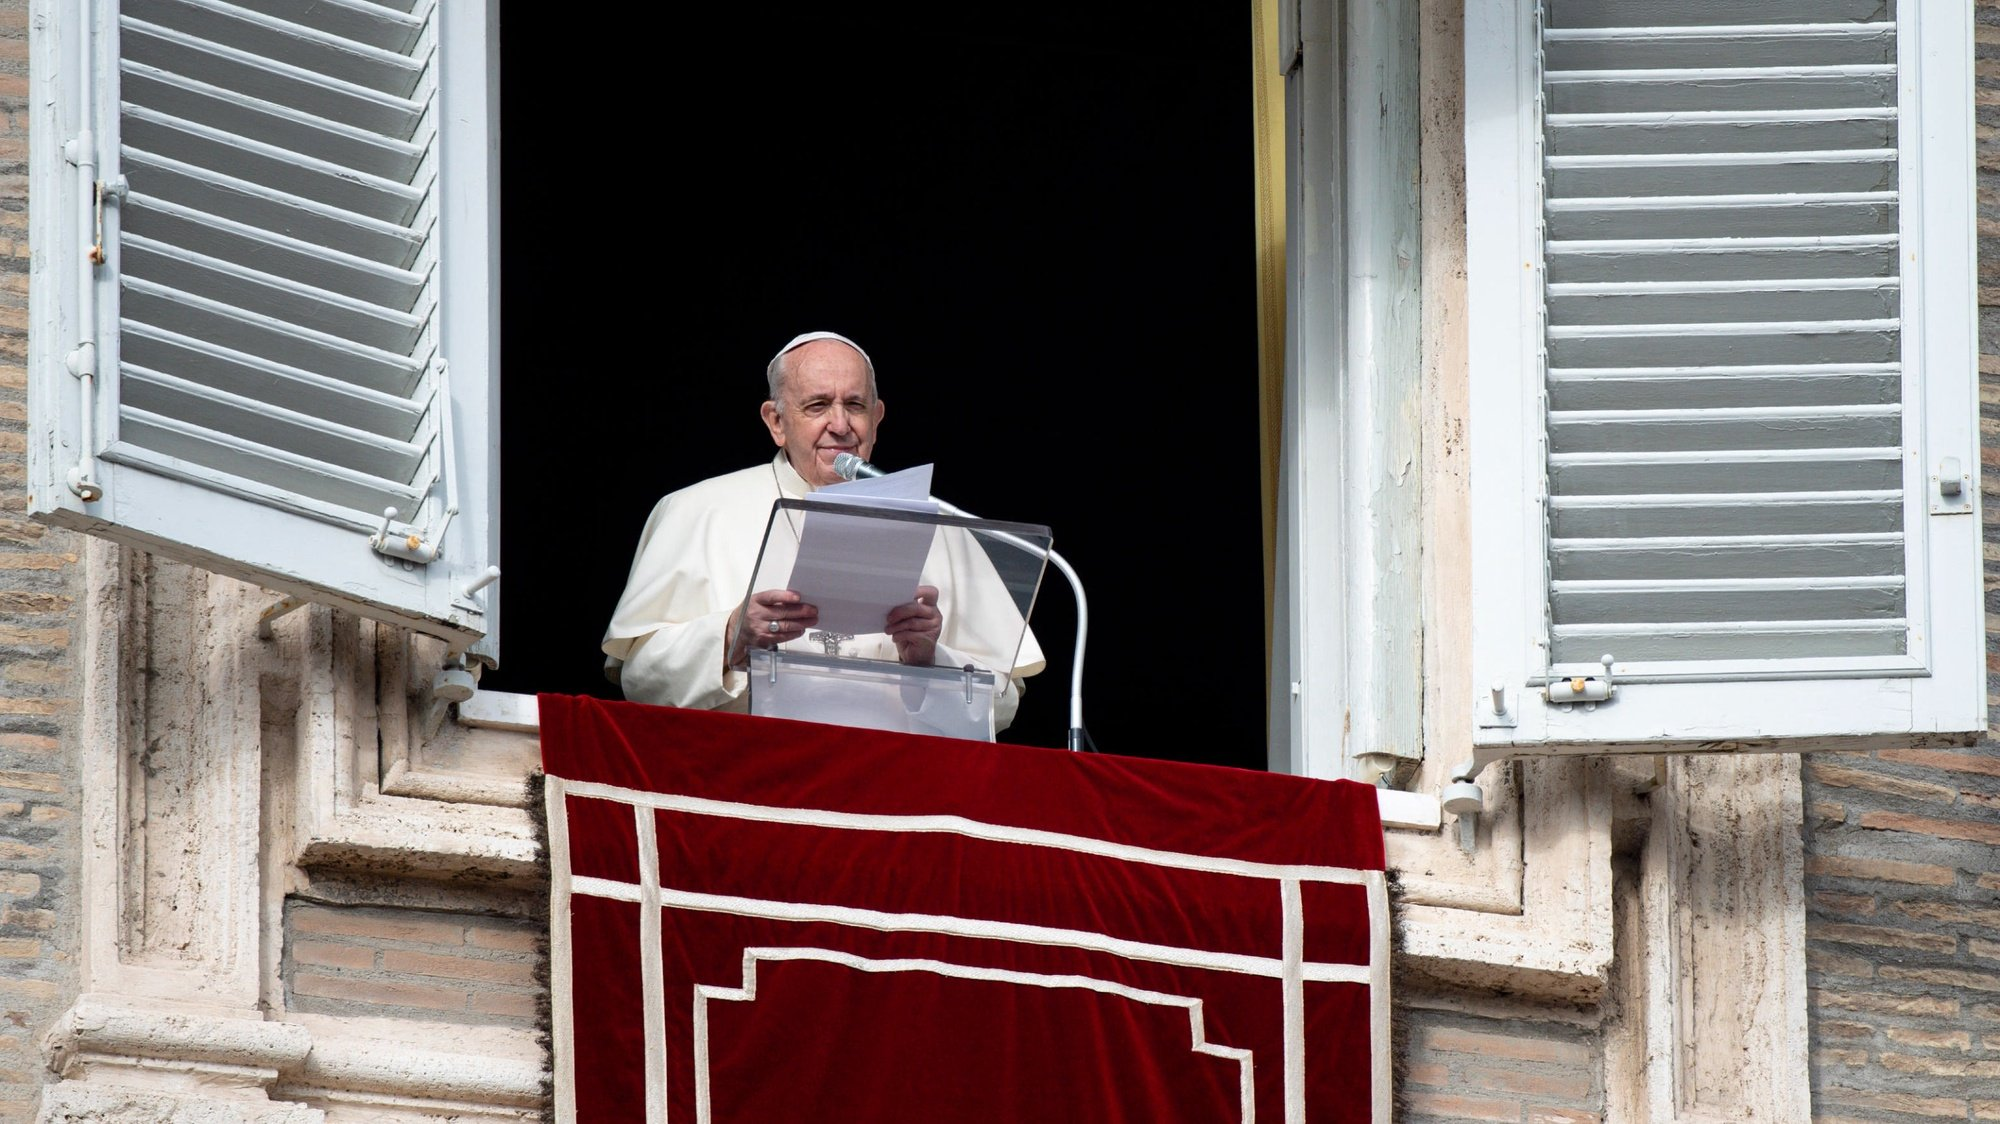 epa08852535 A handout picture provided by the Vatican Media shows Pope Francis during the Angelus prayer in Saint Peter's square, Vatican City, 29 November 2020.  EPA/VATICAN MEDIA HANDOUT  HANDOUT EDITORIAL USE ONLY/NO SALES